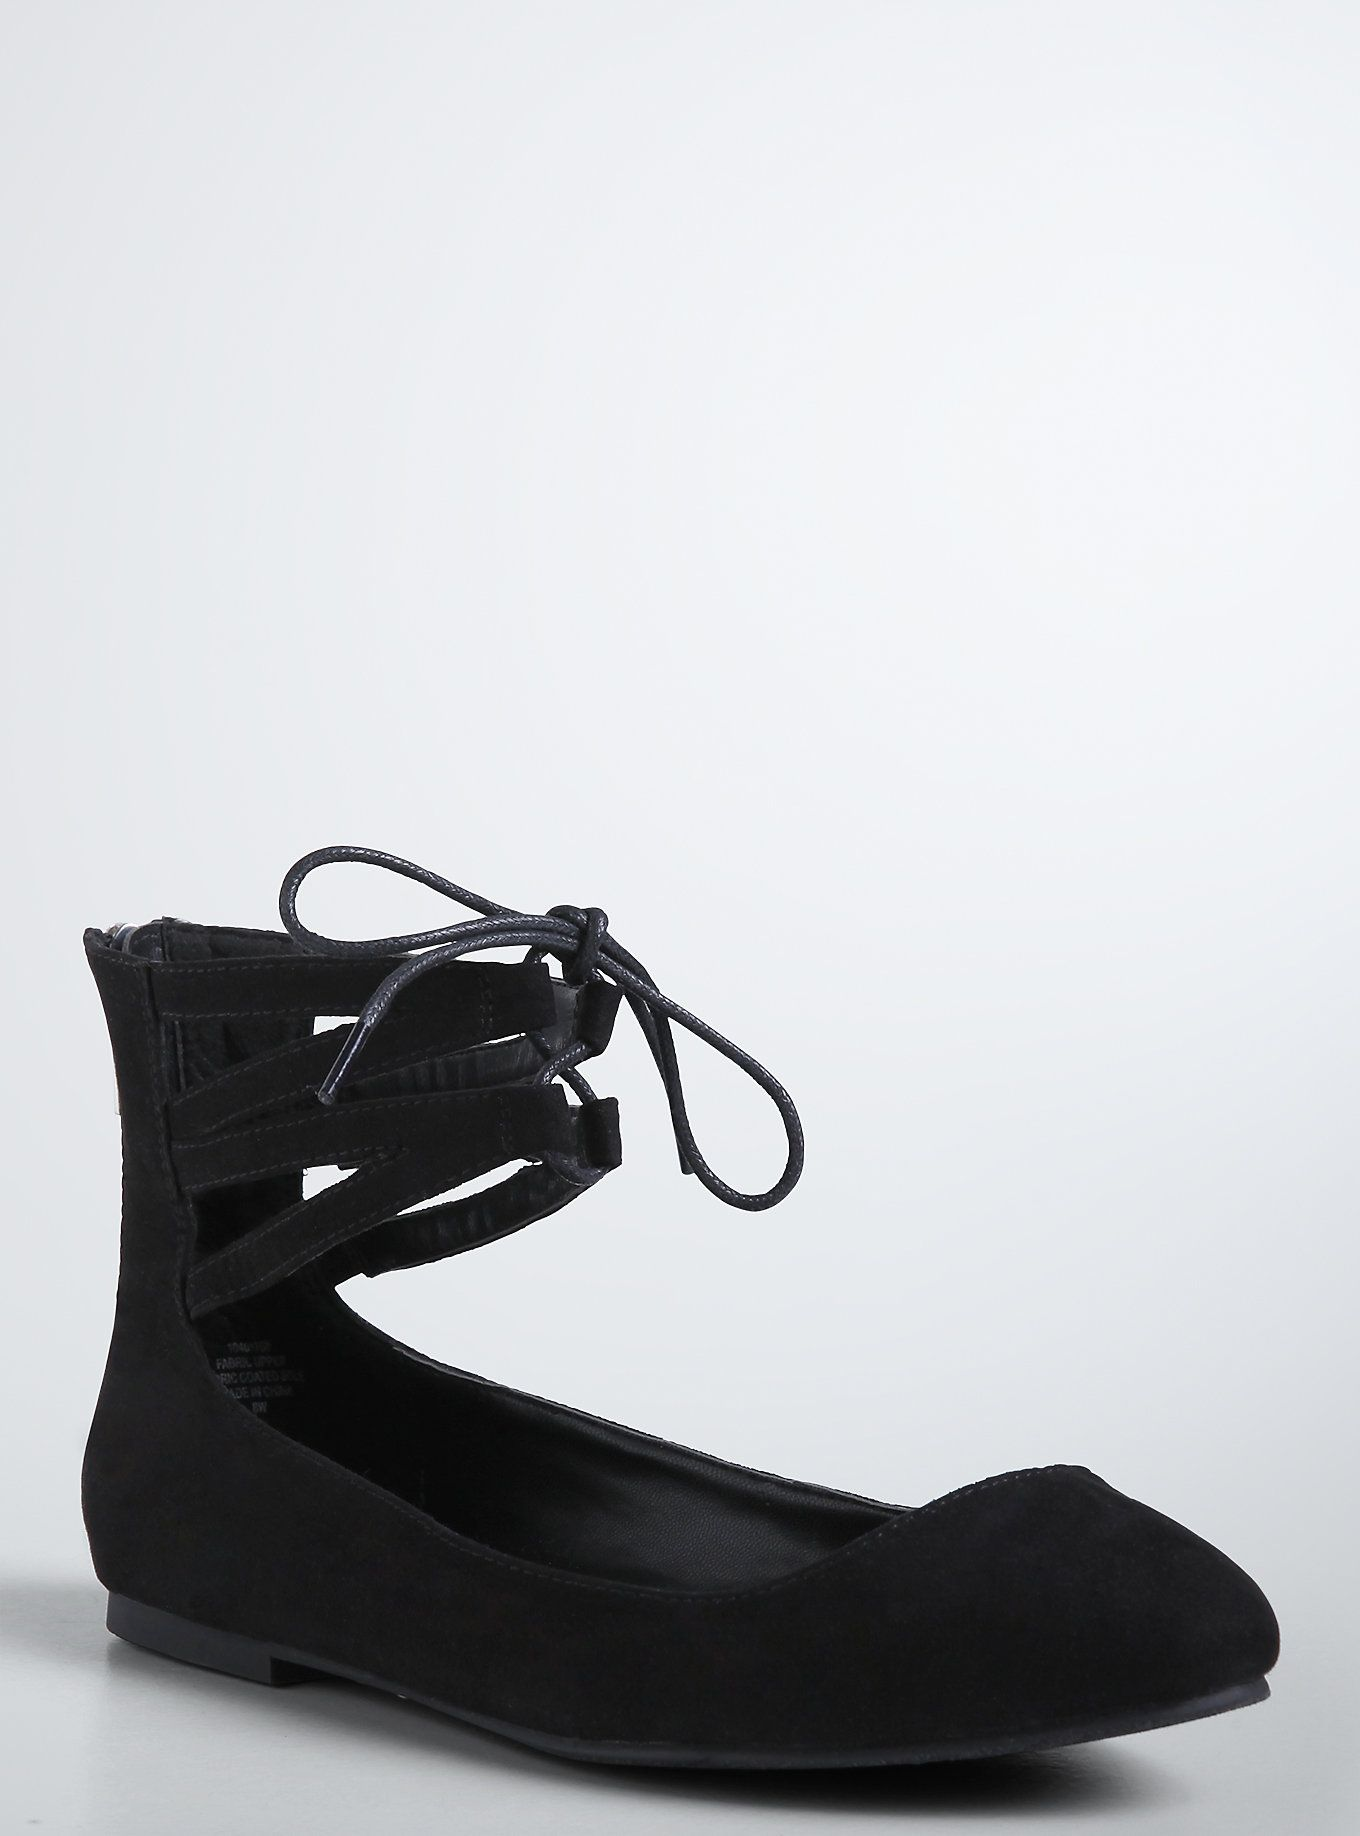 Black dress sandals wide width